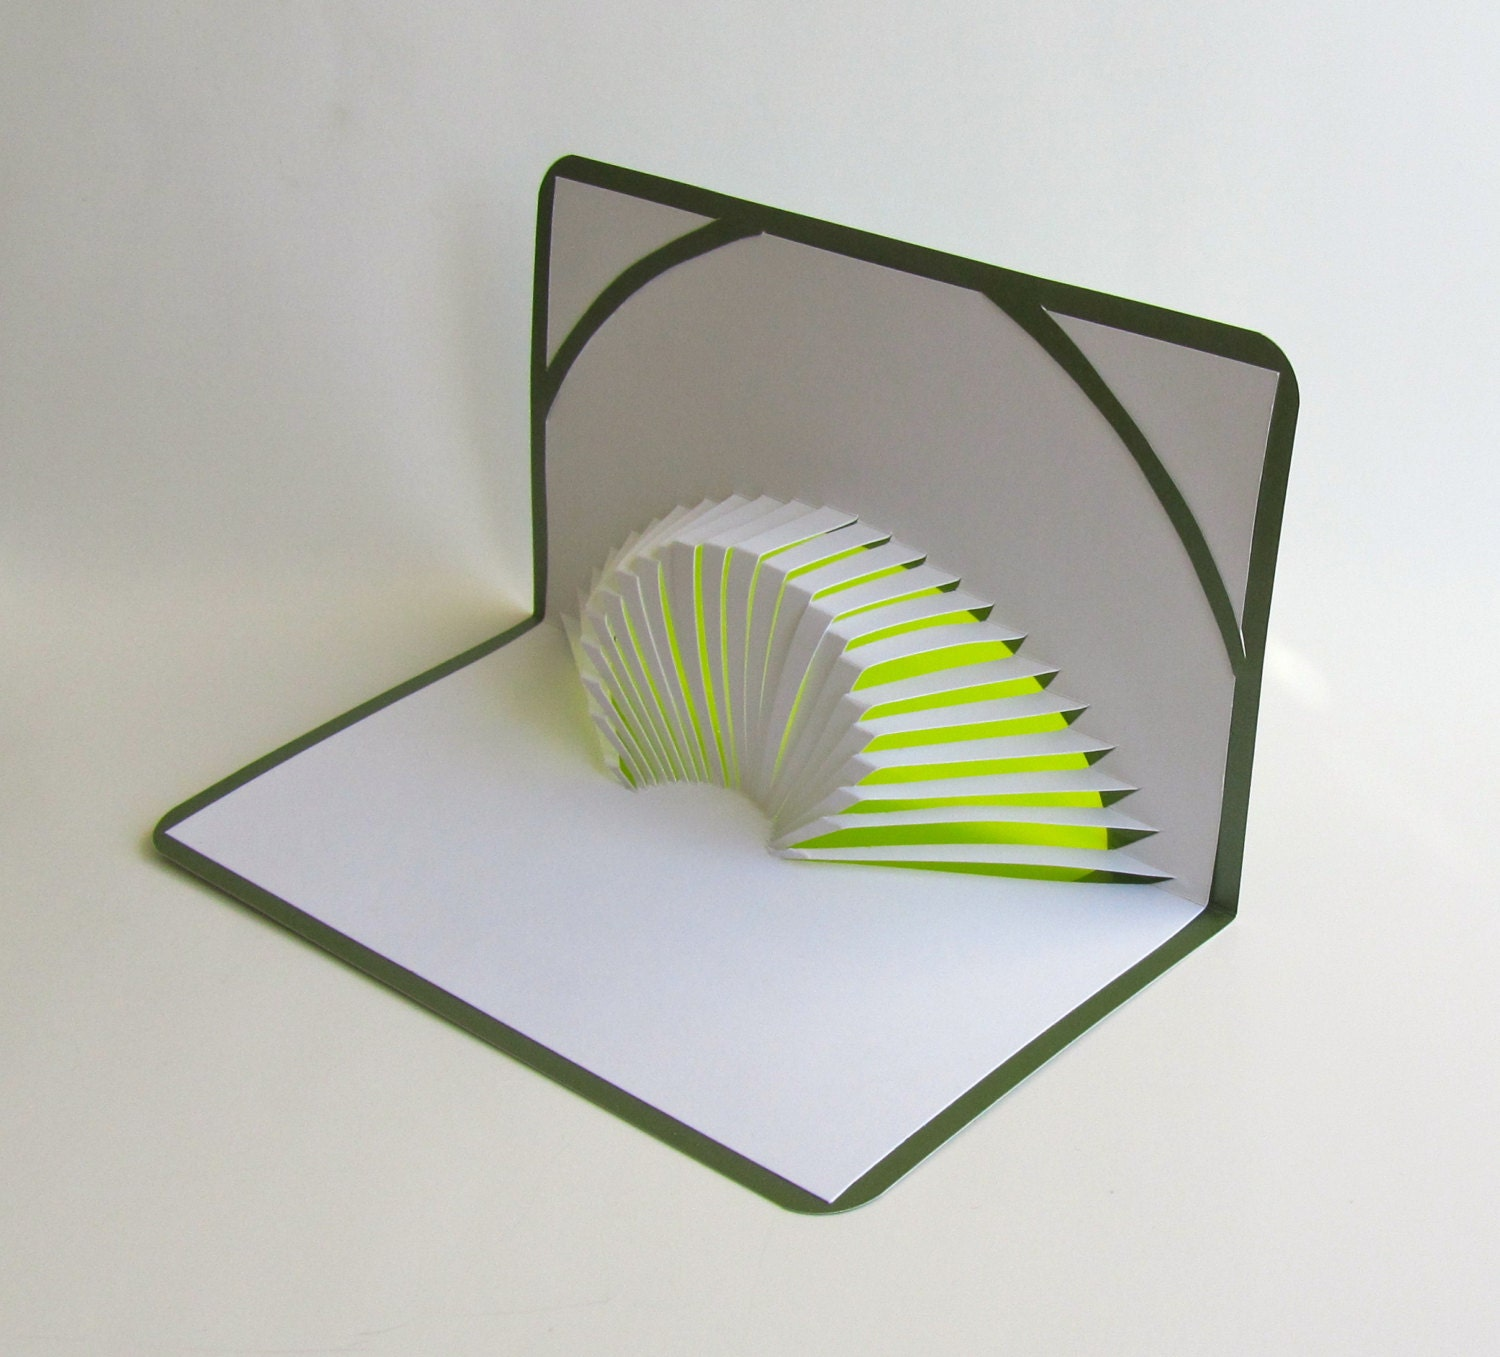 3d pop up card of geometric volcano design with intricate cuts zoomen ccuart Gallery